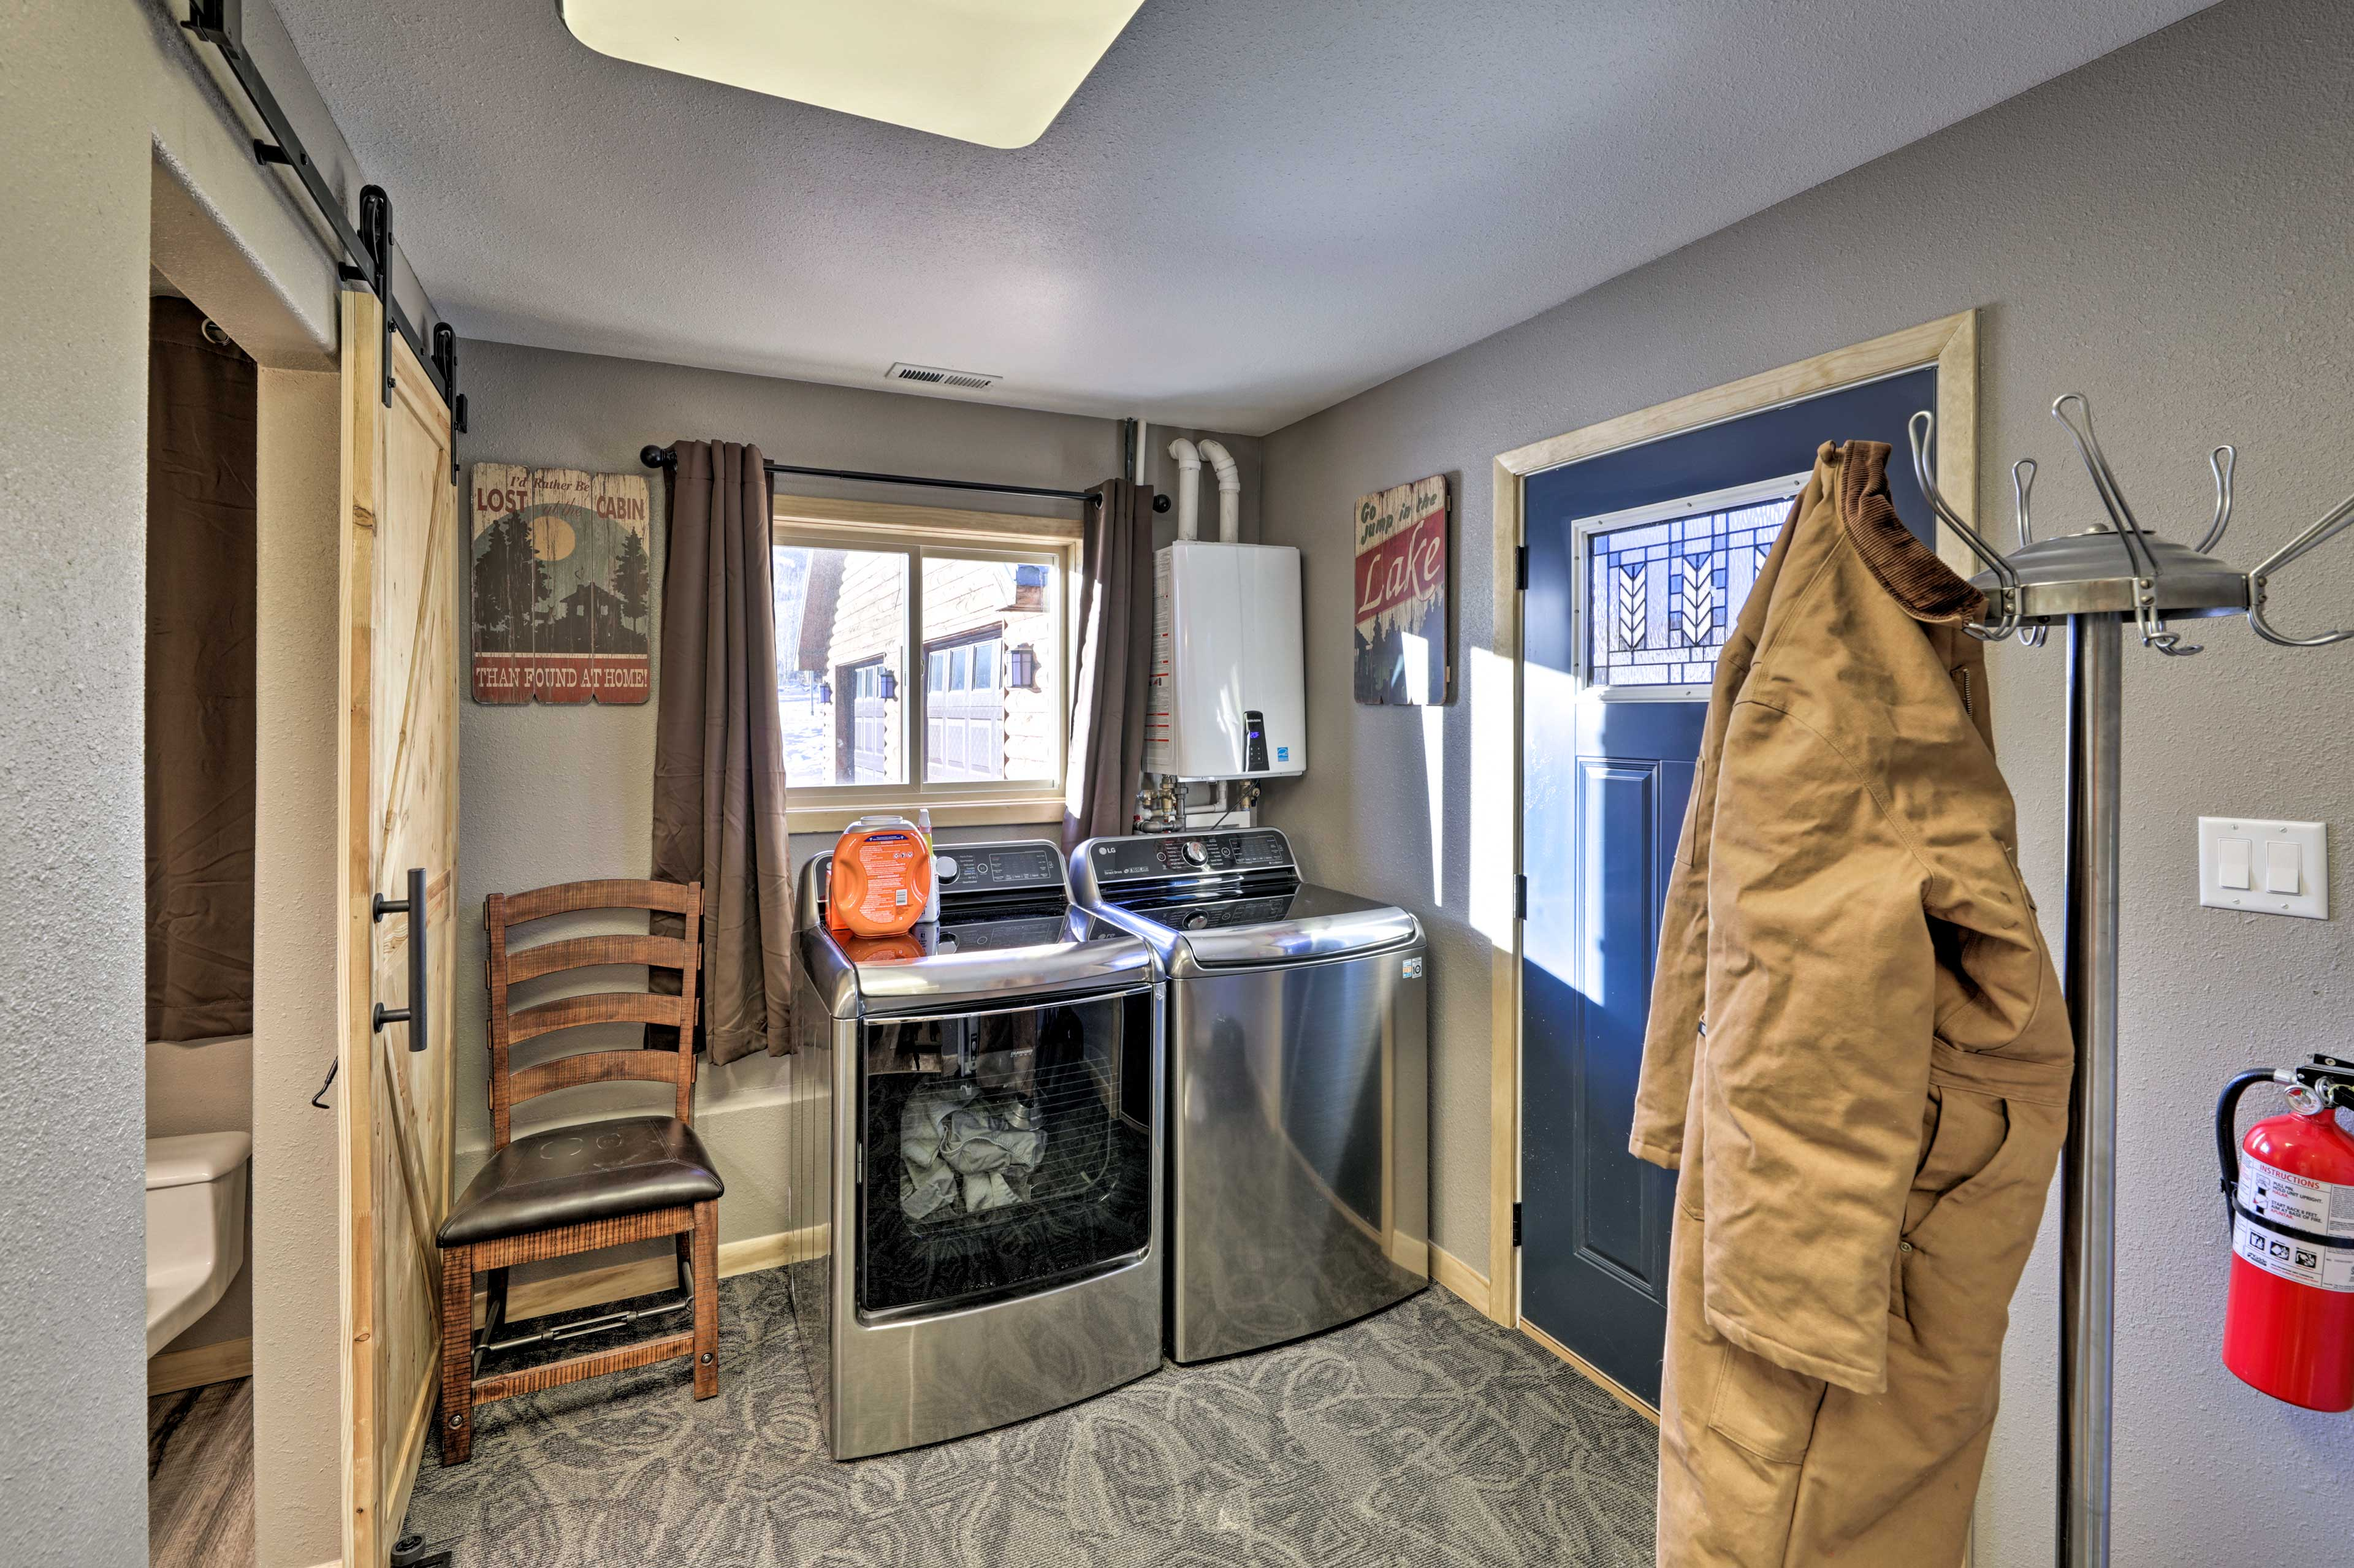 Brand new laundry machines are featured in this home.